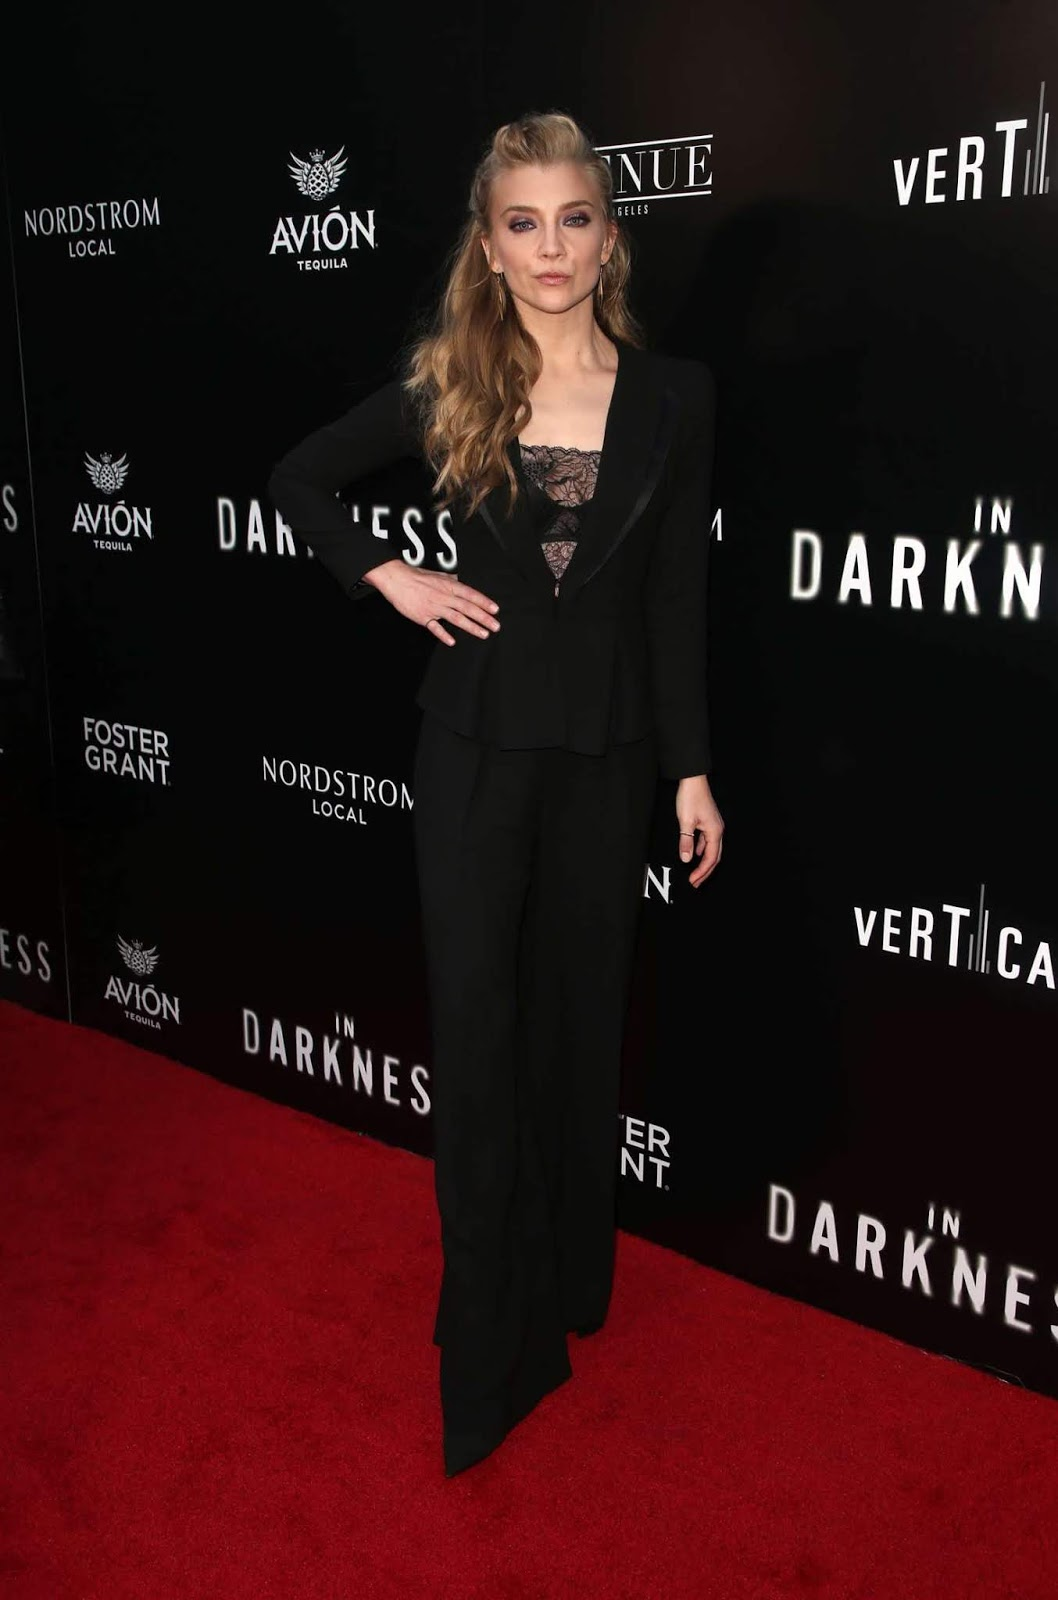 Natalie Dormer bares black lingerie for the 'In Darkness' LA Premiere